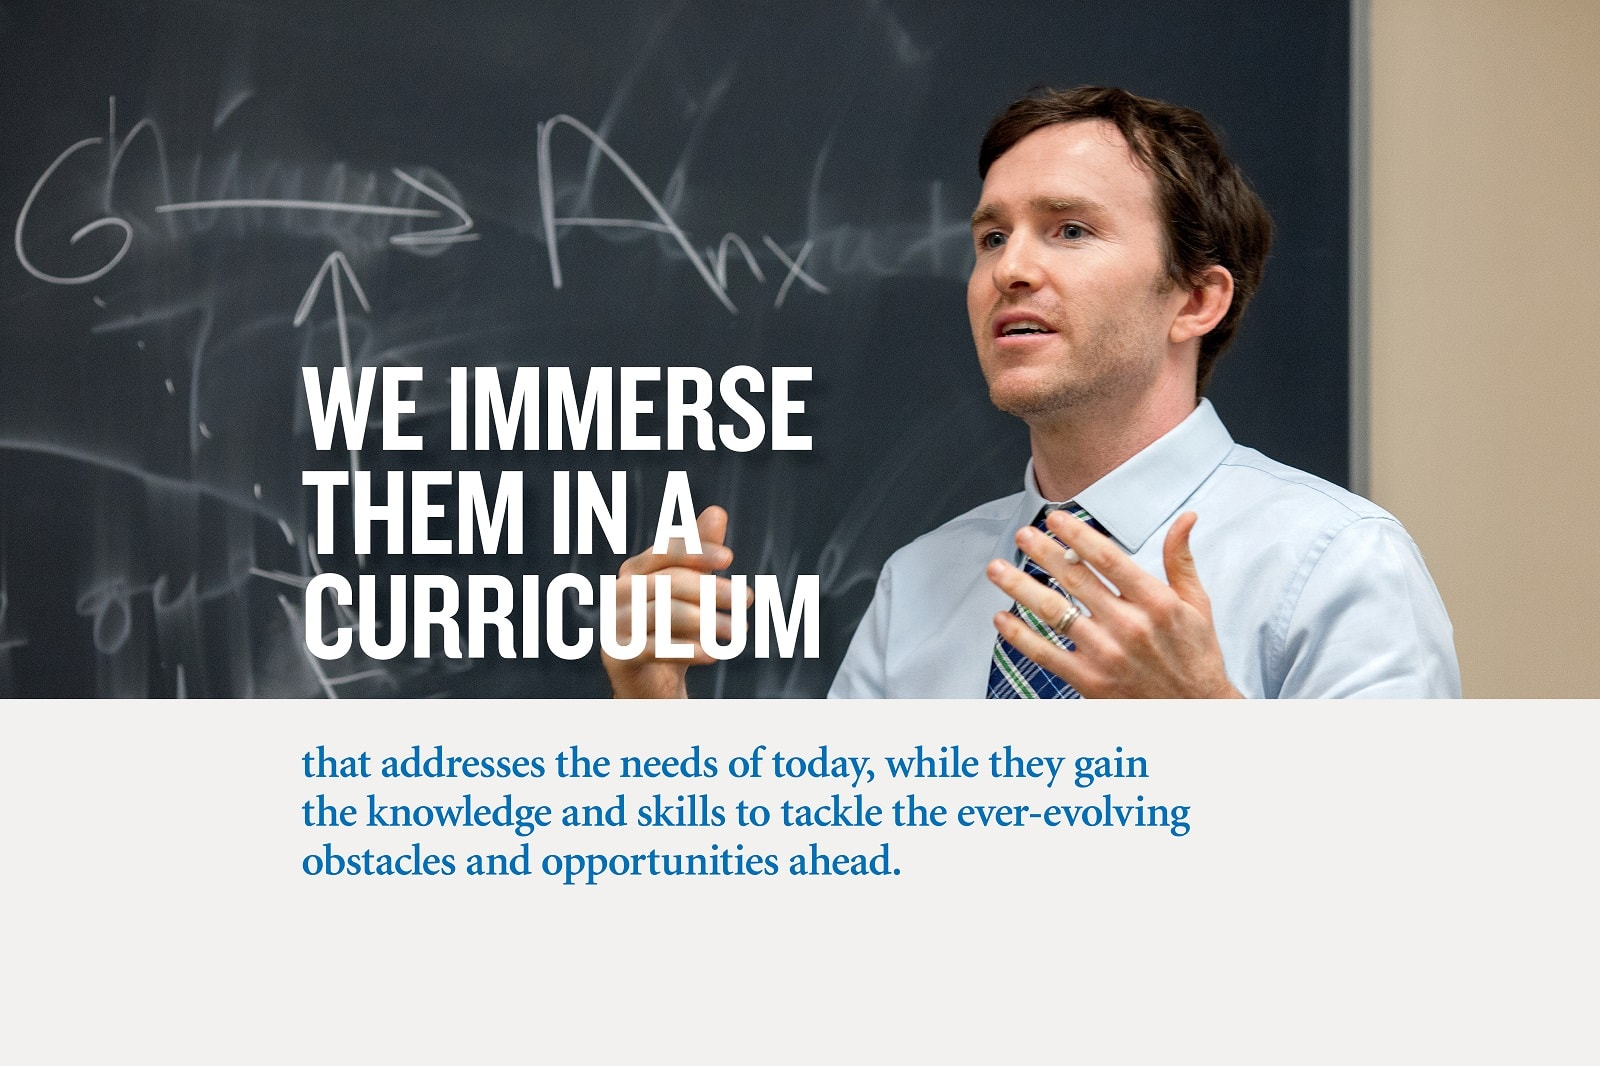 We immerse them in a curriculum.